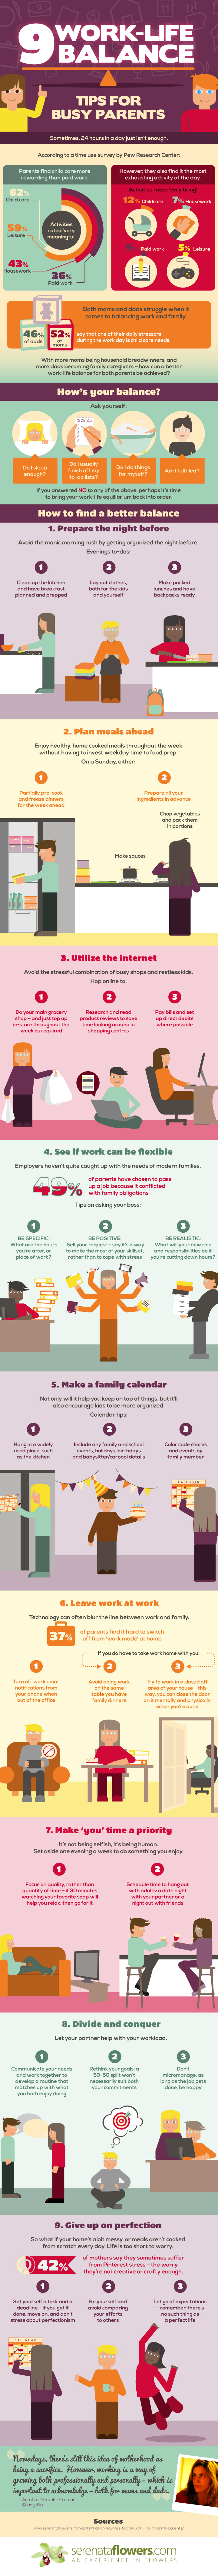 Work-Life Balance Tips for Busy Parents